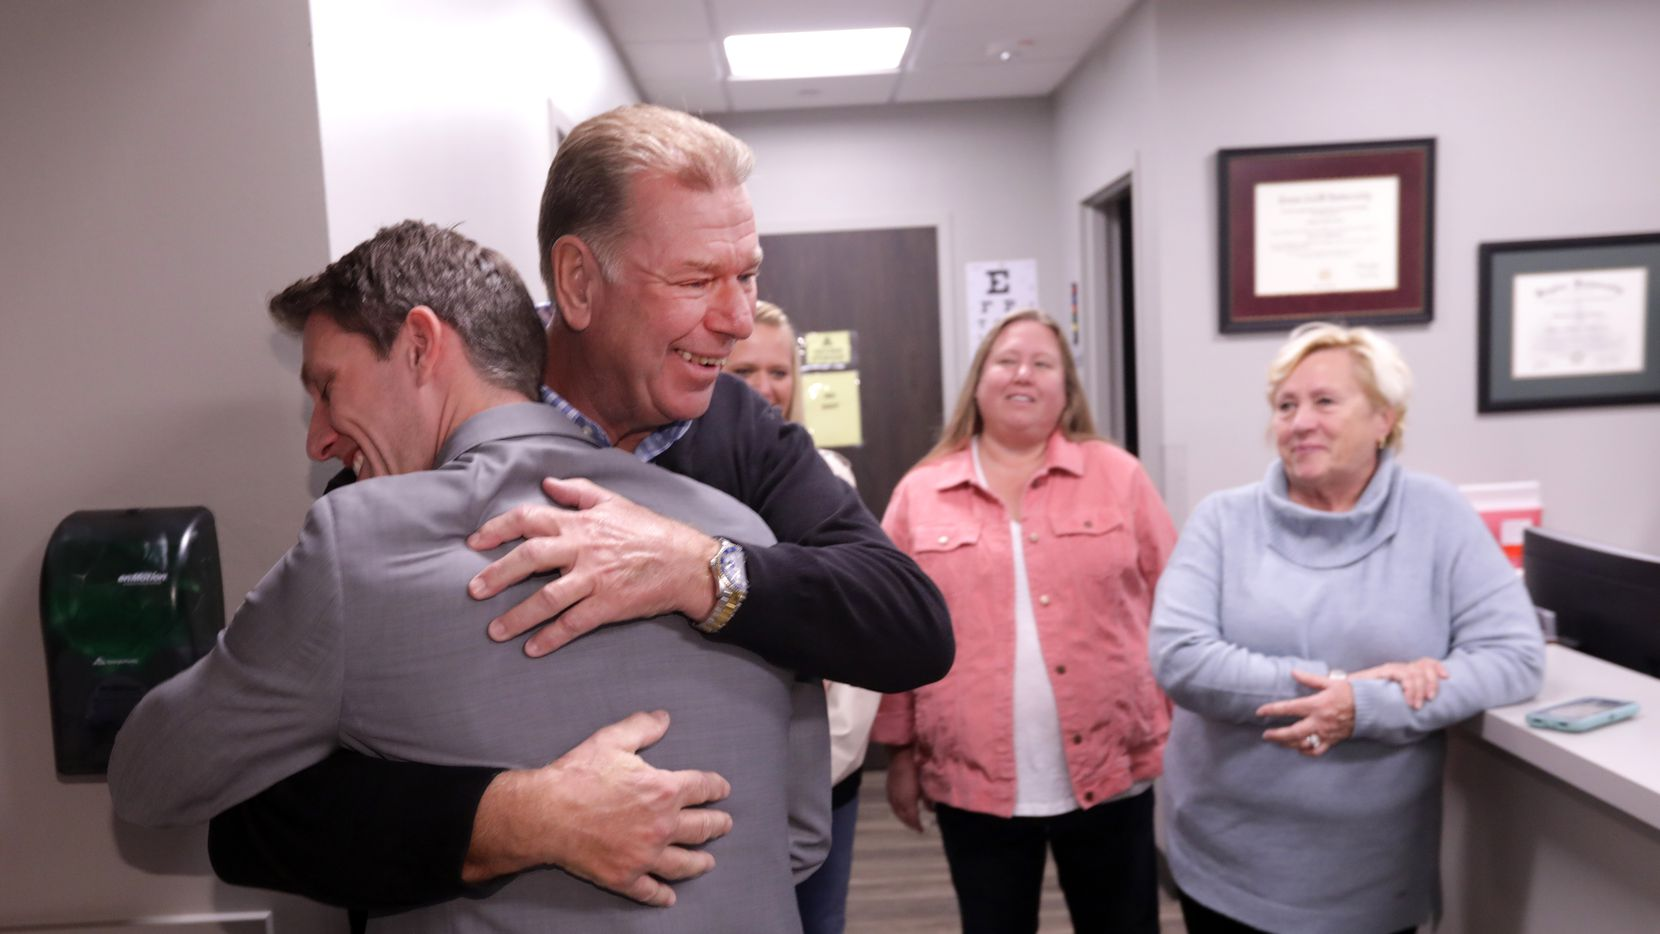 Dr. Andrew Parker, left, and Dennis Bennett embrace after meeting at Allen Orthopedics and Sports Medicine in Allen, TX, on Nov. 13, 2019. (Jason Janik/Special Contributor)